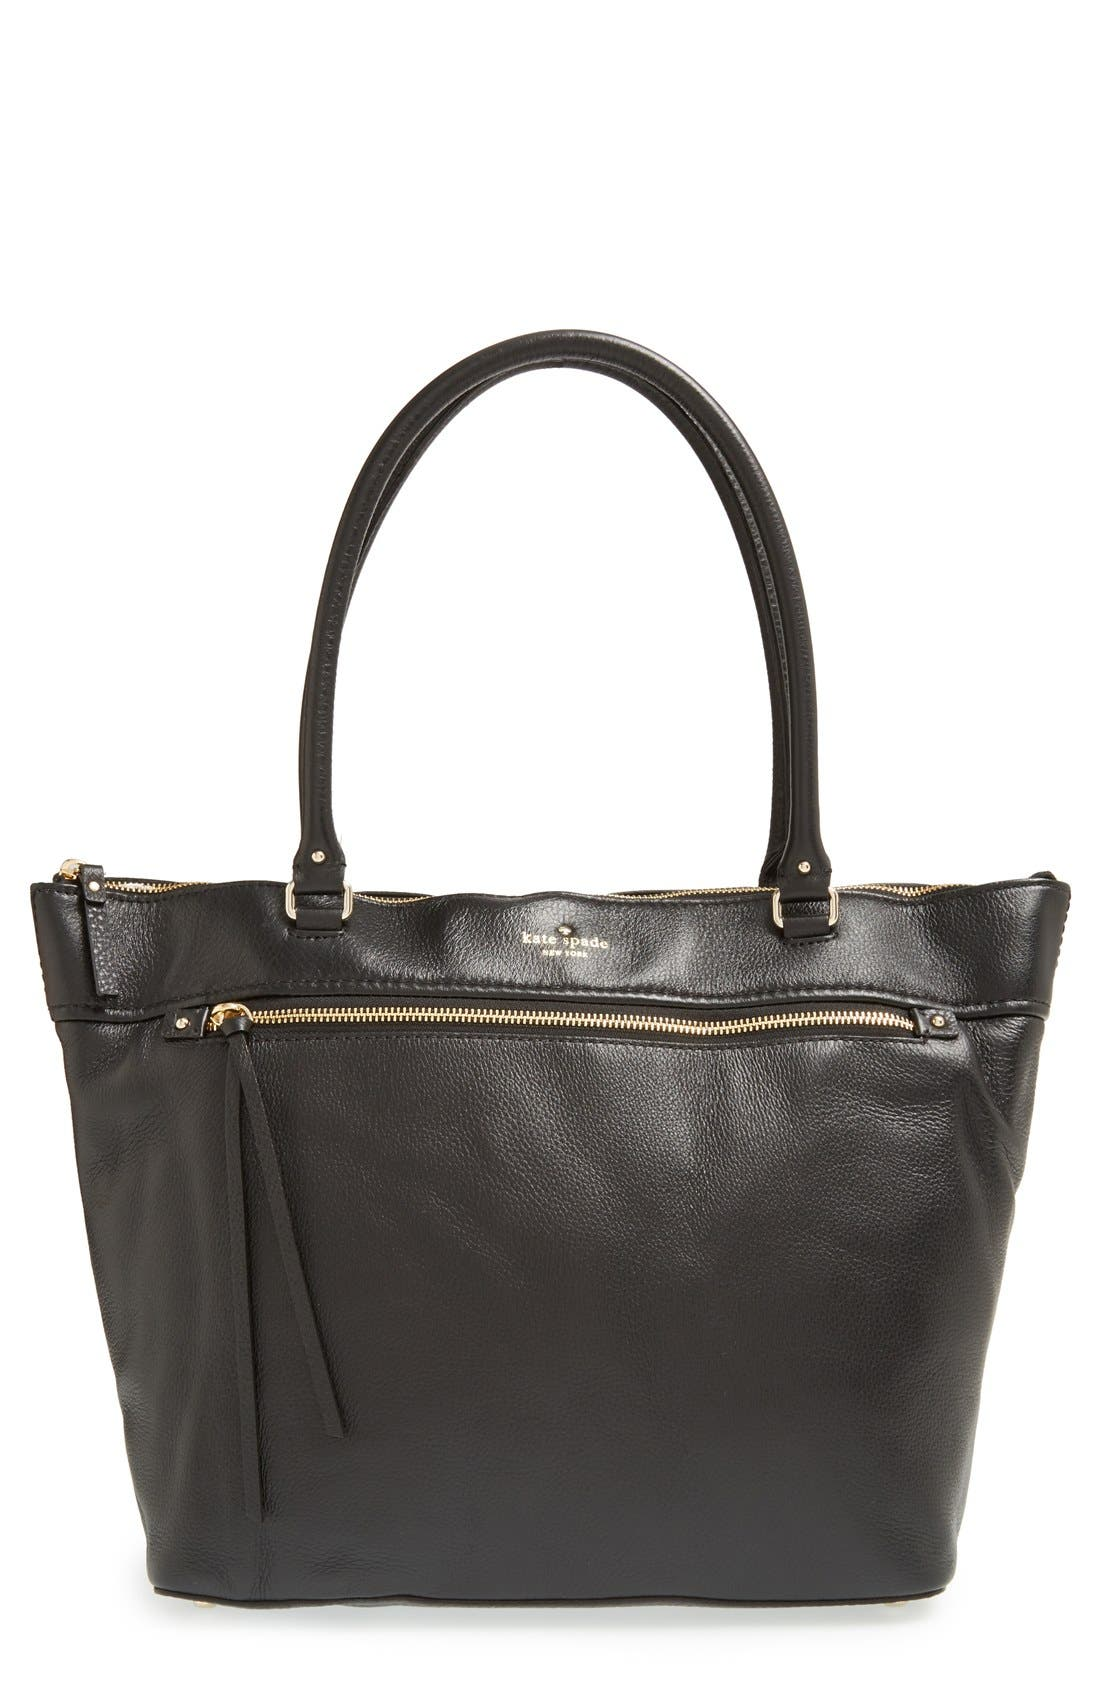 Alternate Image 1 Selected - kate spade new york 'cobble hill - gina' leather tote